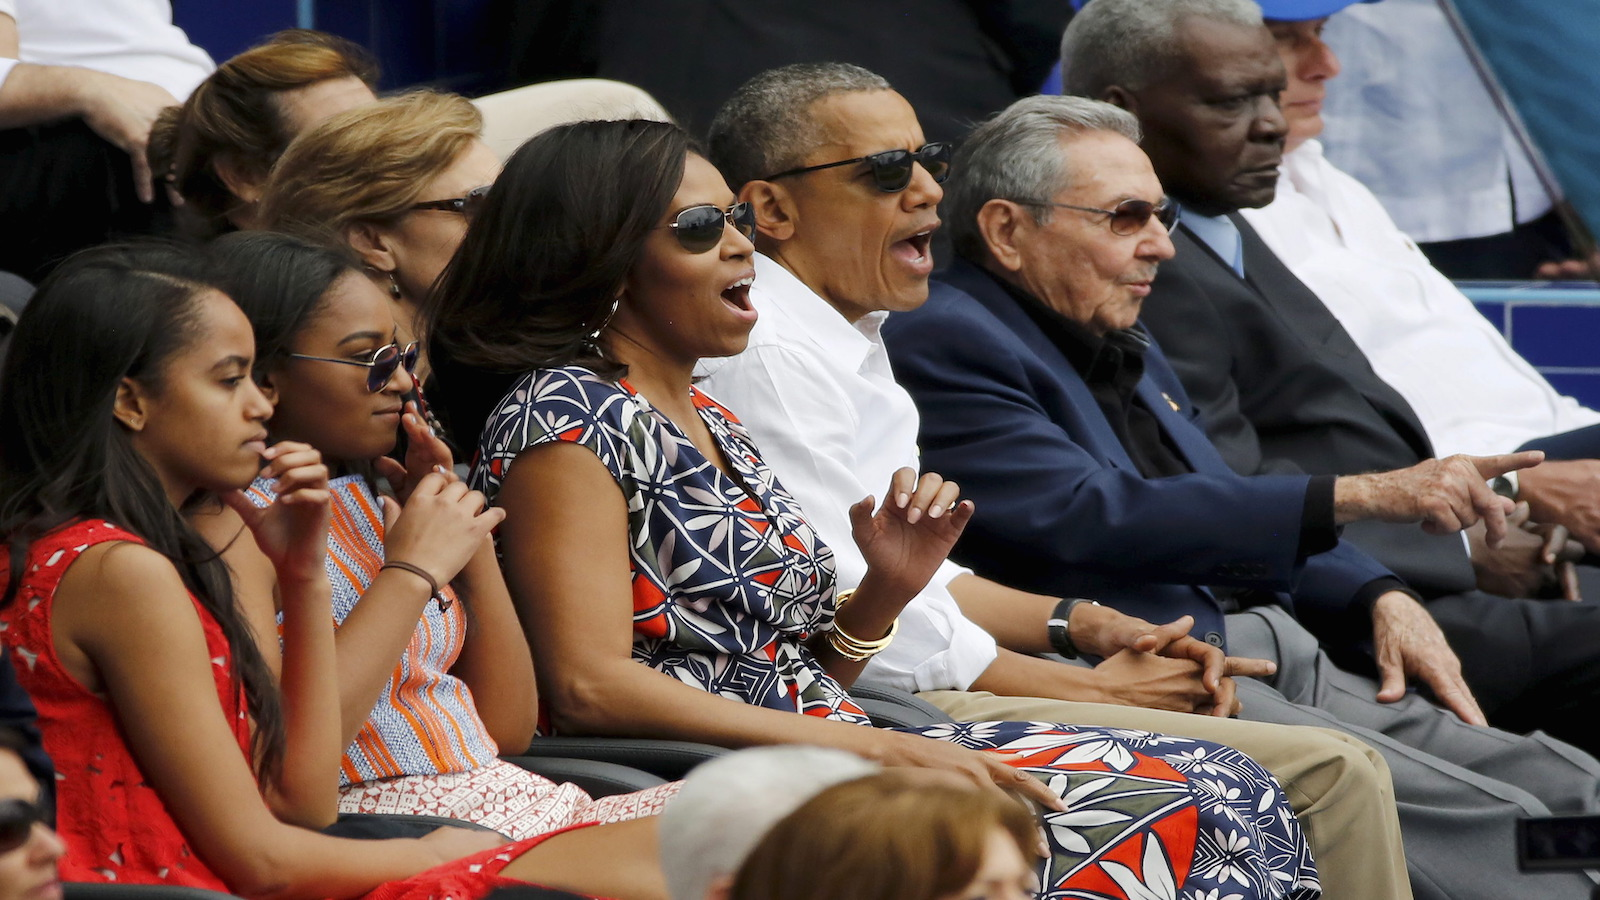 U.S. President Barack Obama and his family react along with Cuban President Raul Castro to an exhibition baseball game between the Cuban National team and the MLB Tampa Bay Rays at Estadio Latinoamericano in Havana March 22, 2016.